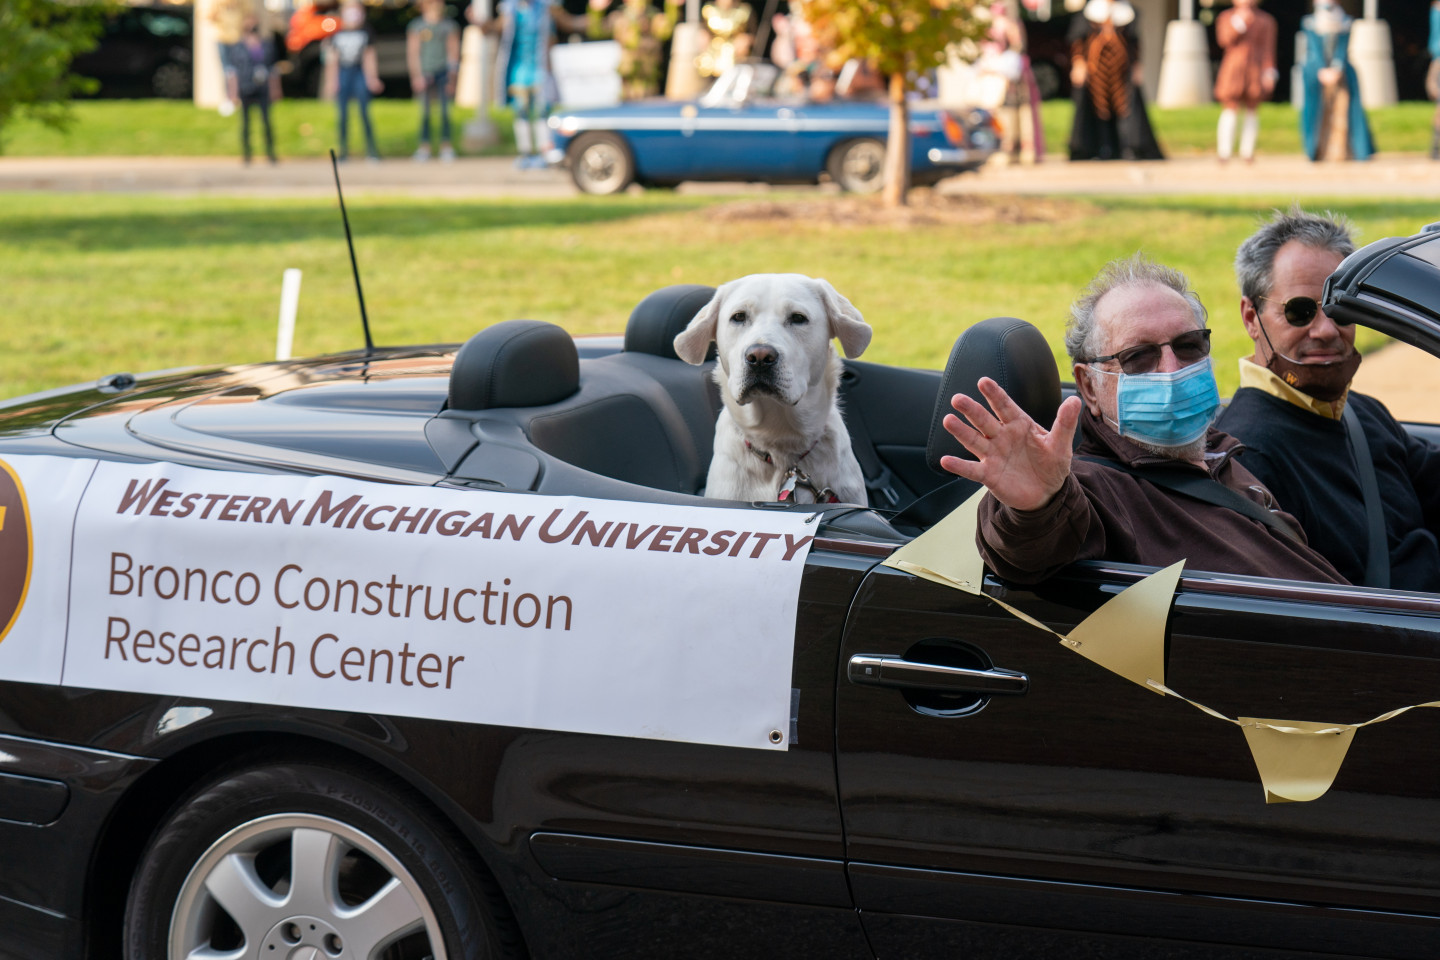 """A dog sits in the back of a car with a """"Bronco Construction Research Center"""" sign."""